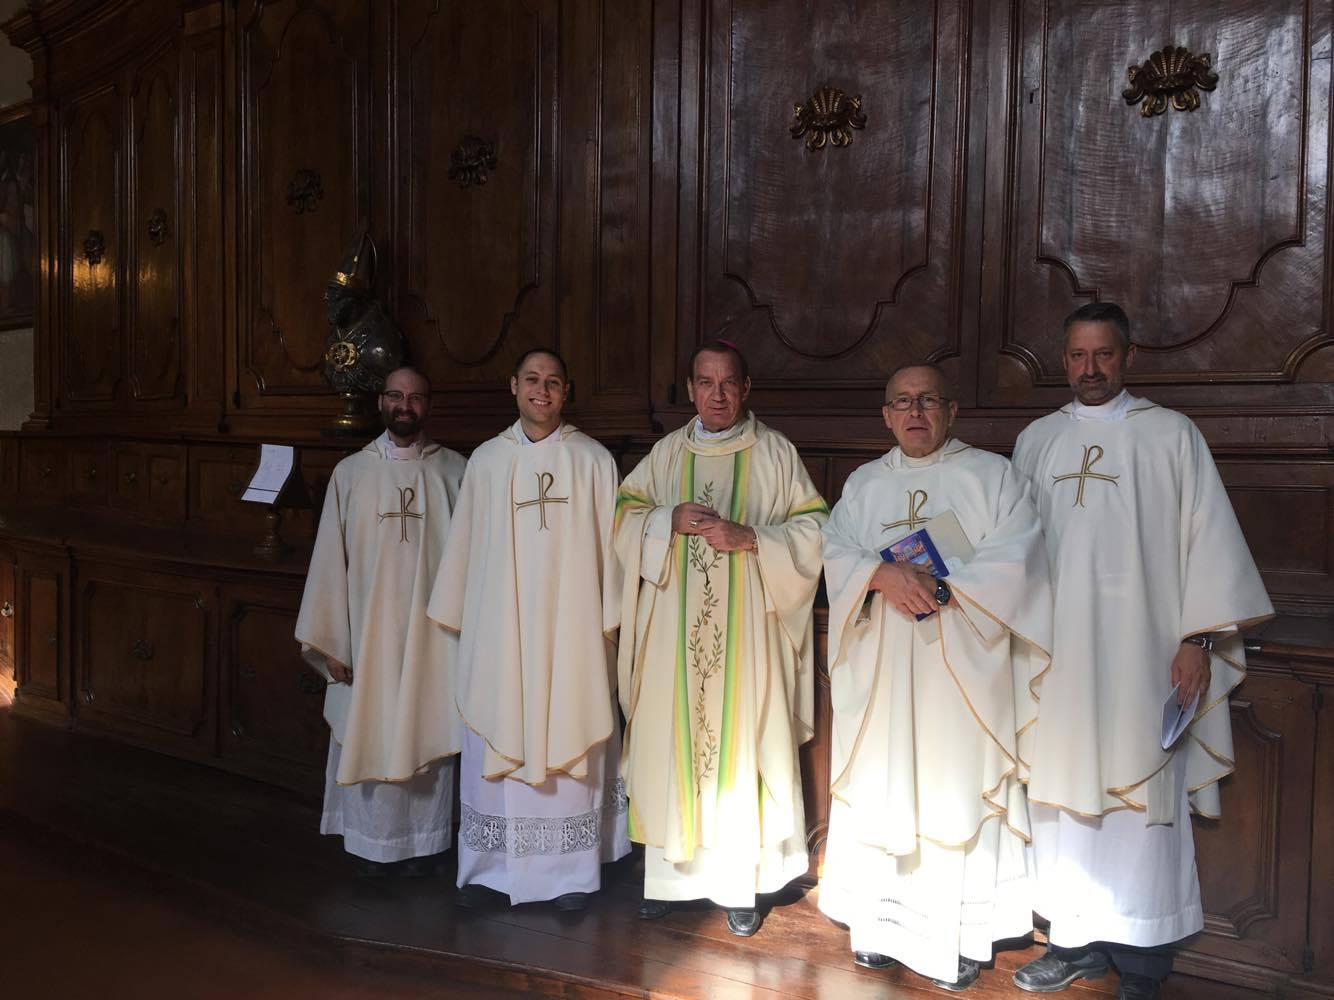 From Left to right, Fr. Roush, Fr. Fahey, Archbishop Schnurr, Fr. Schmidt, and Fr. Kunst prepare for Mass at St. Dominic Basilica in Siena Italy (Courtesy Photo)in Siena Italy (Courtesy Photo)